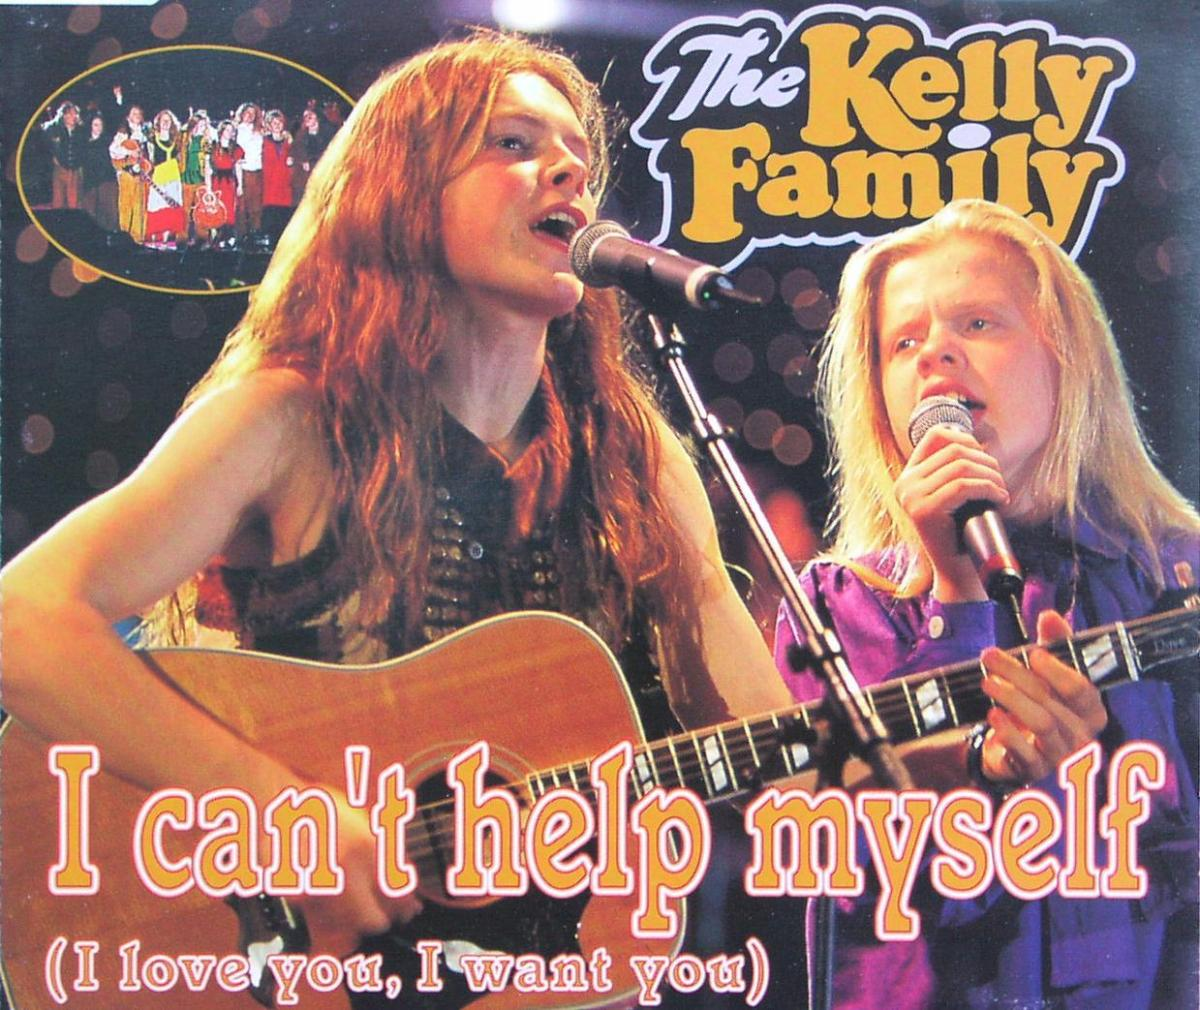 Kelly Family - I Can't Help Myself (I Love You, I Want You) [CD-Single]